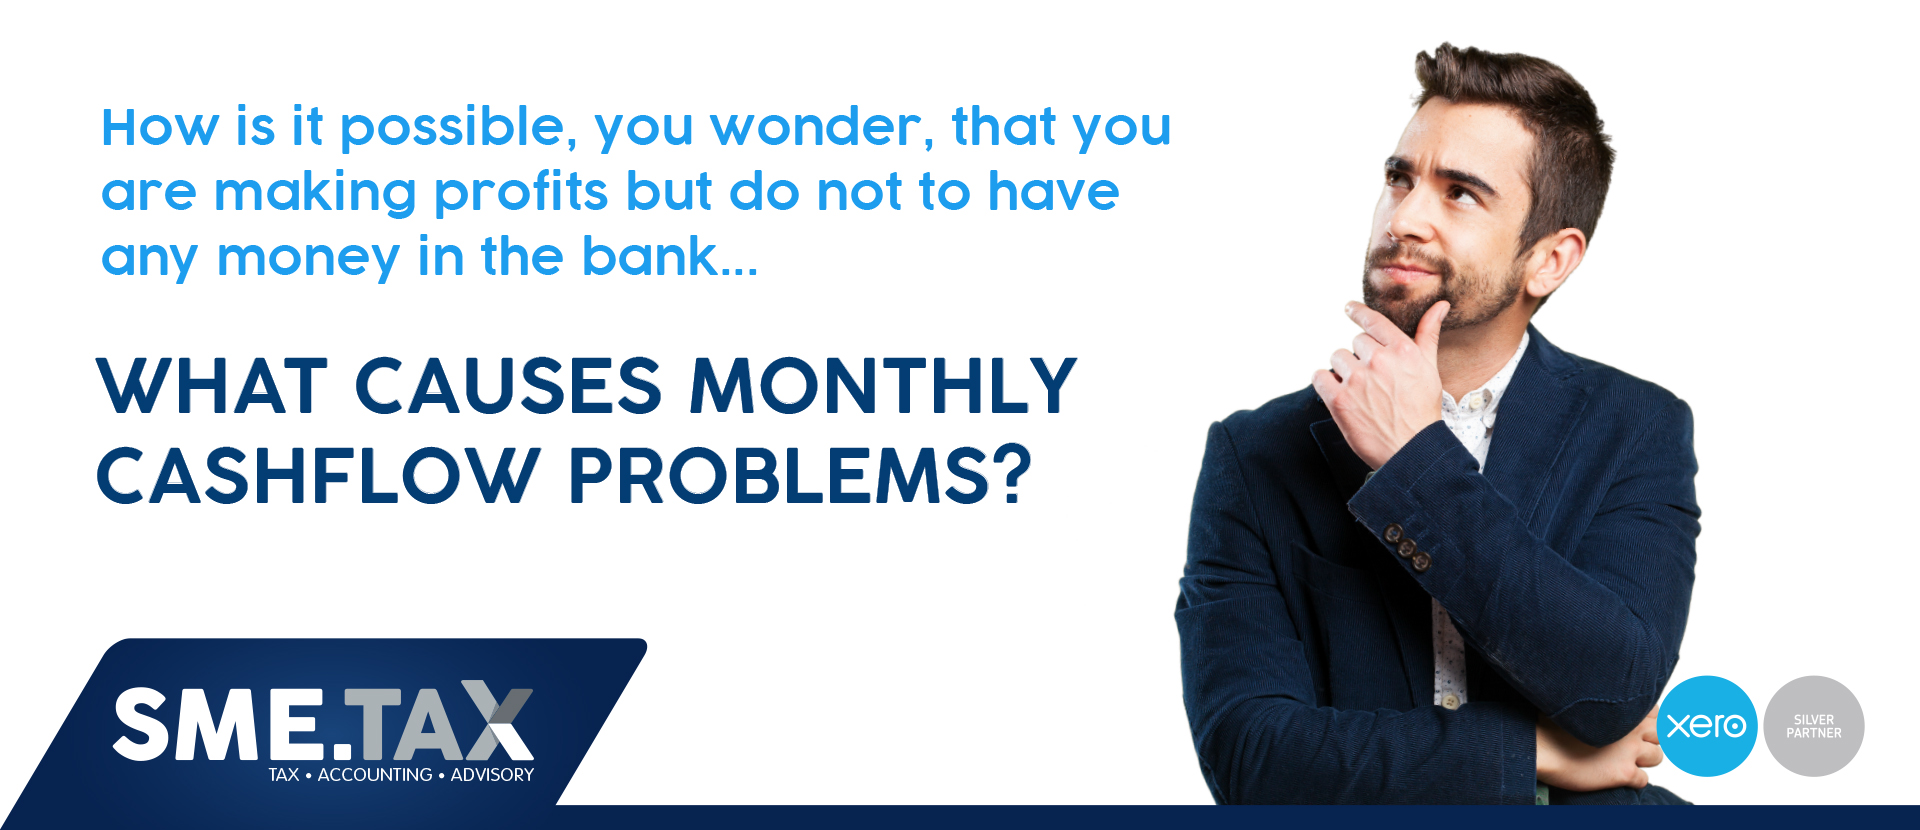 CASHFLOW PROBLEMS... What are the circumstances that causes this? 3